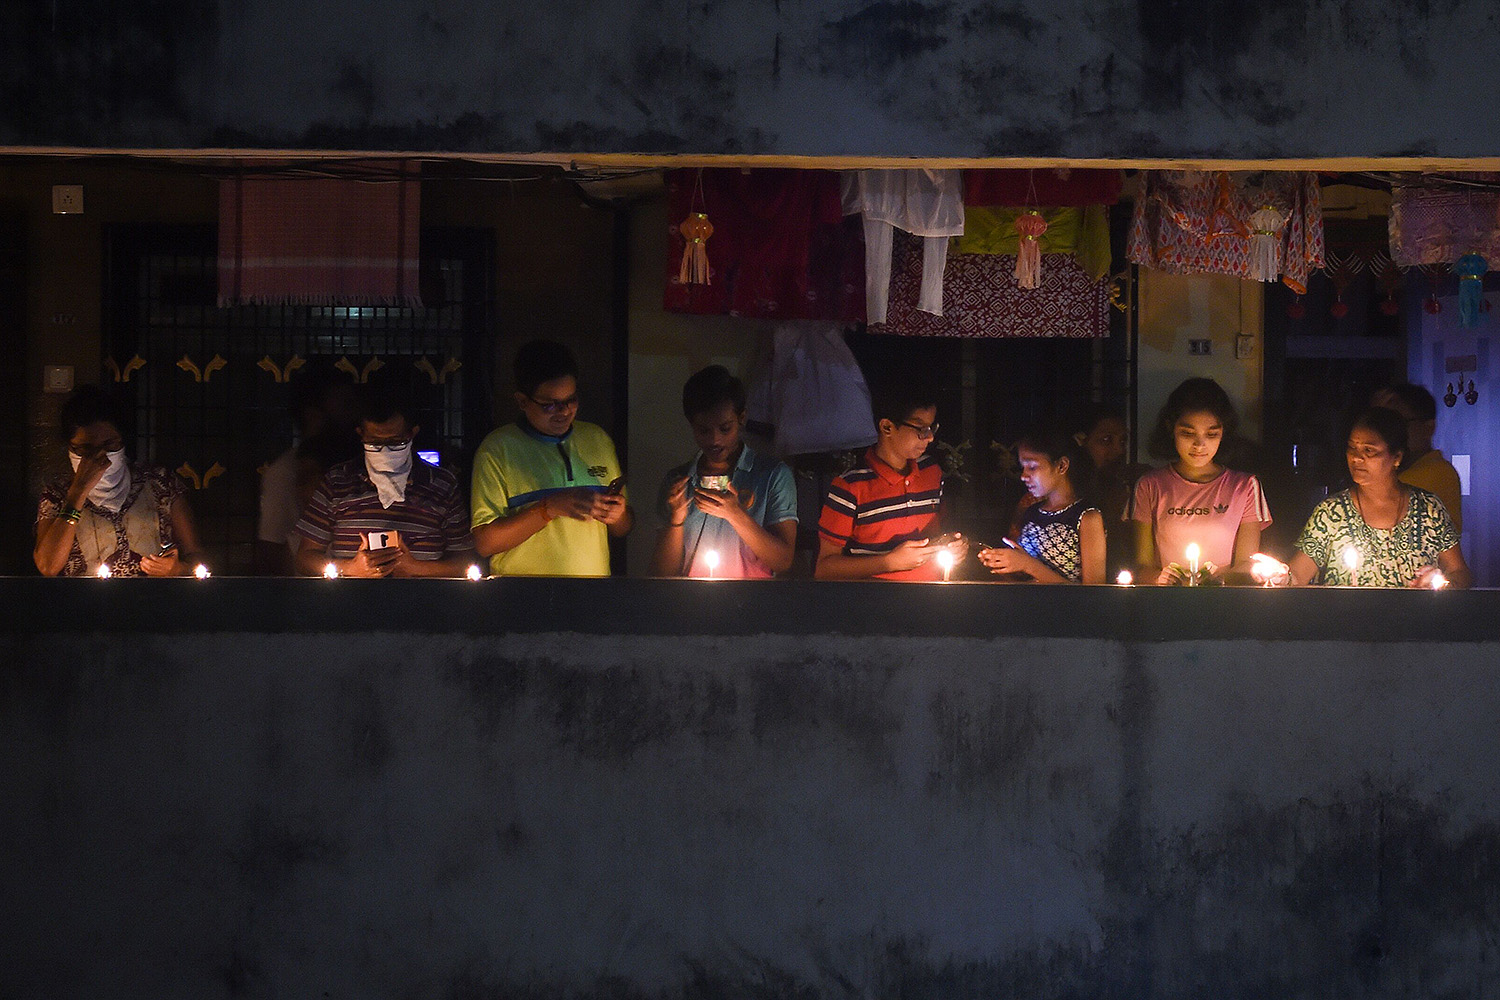 From their balconies, residents in Mumbai light candles and turn on their cellphone lights during a nine-minute vigil called by India's prime minister April 5 to show unity and solidarity in the fight against the coronavirus. PUNIT PARANJPE/AFP via Getty Images